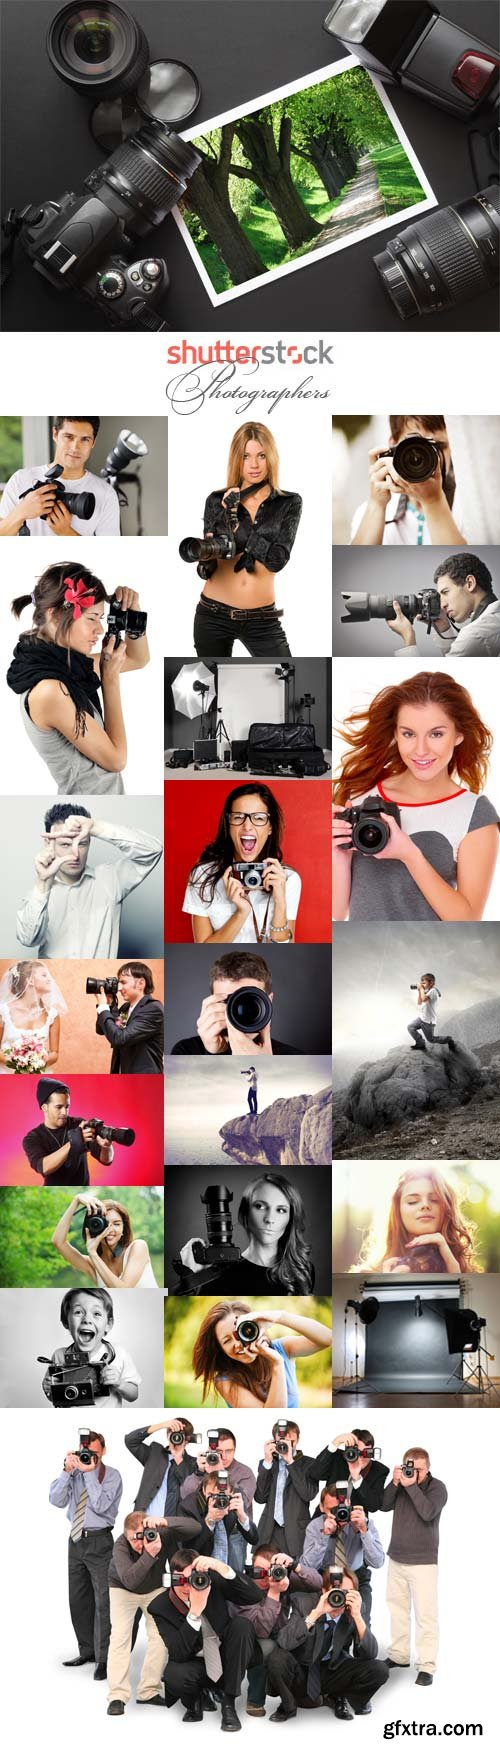 Stock photos photographers